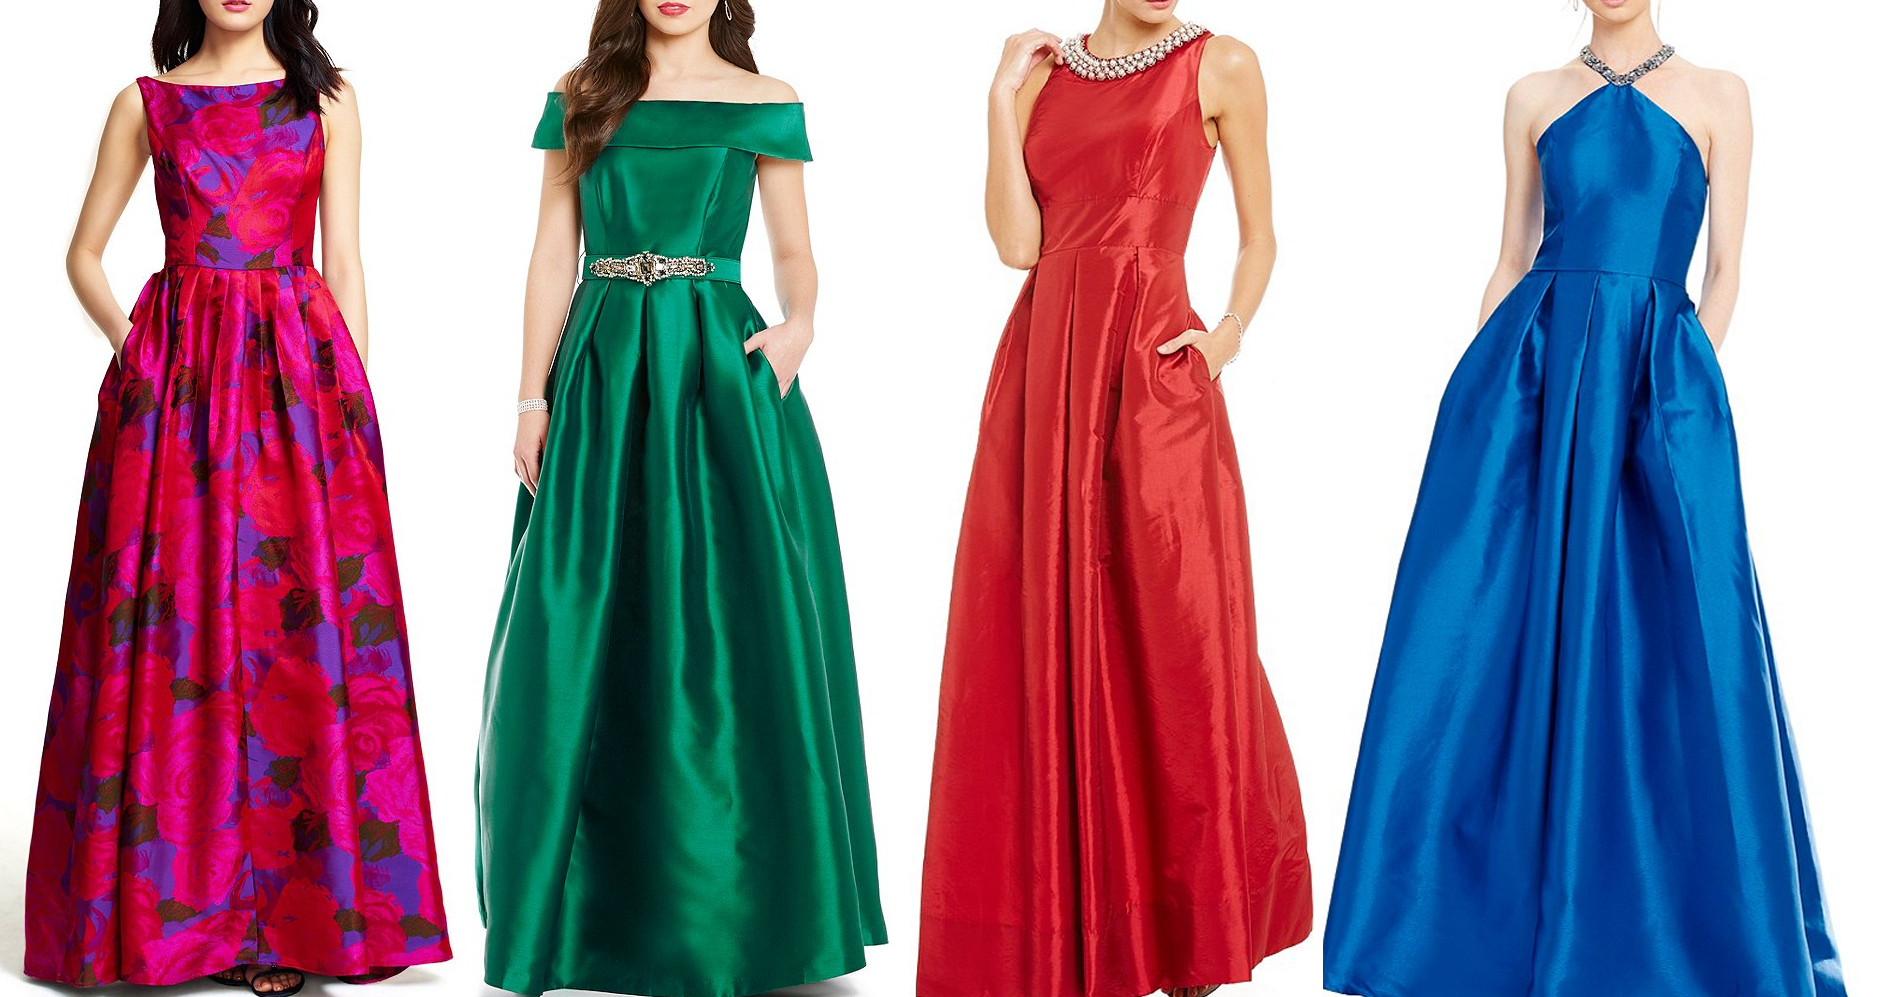 25873215bf8 Womens formal dresses and evening gowns at Dillards - My Fashion Wants